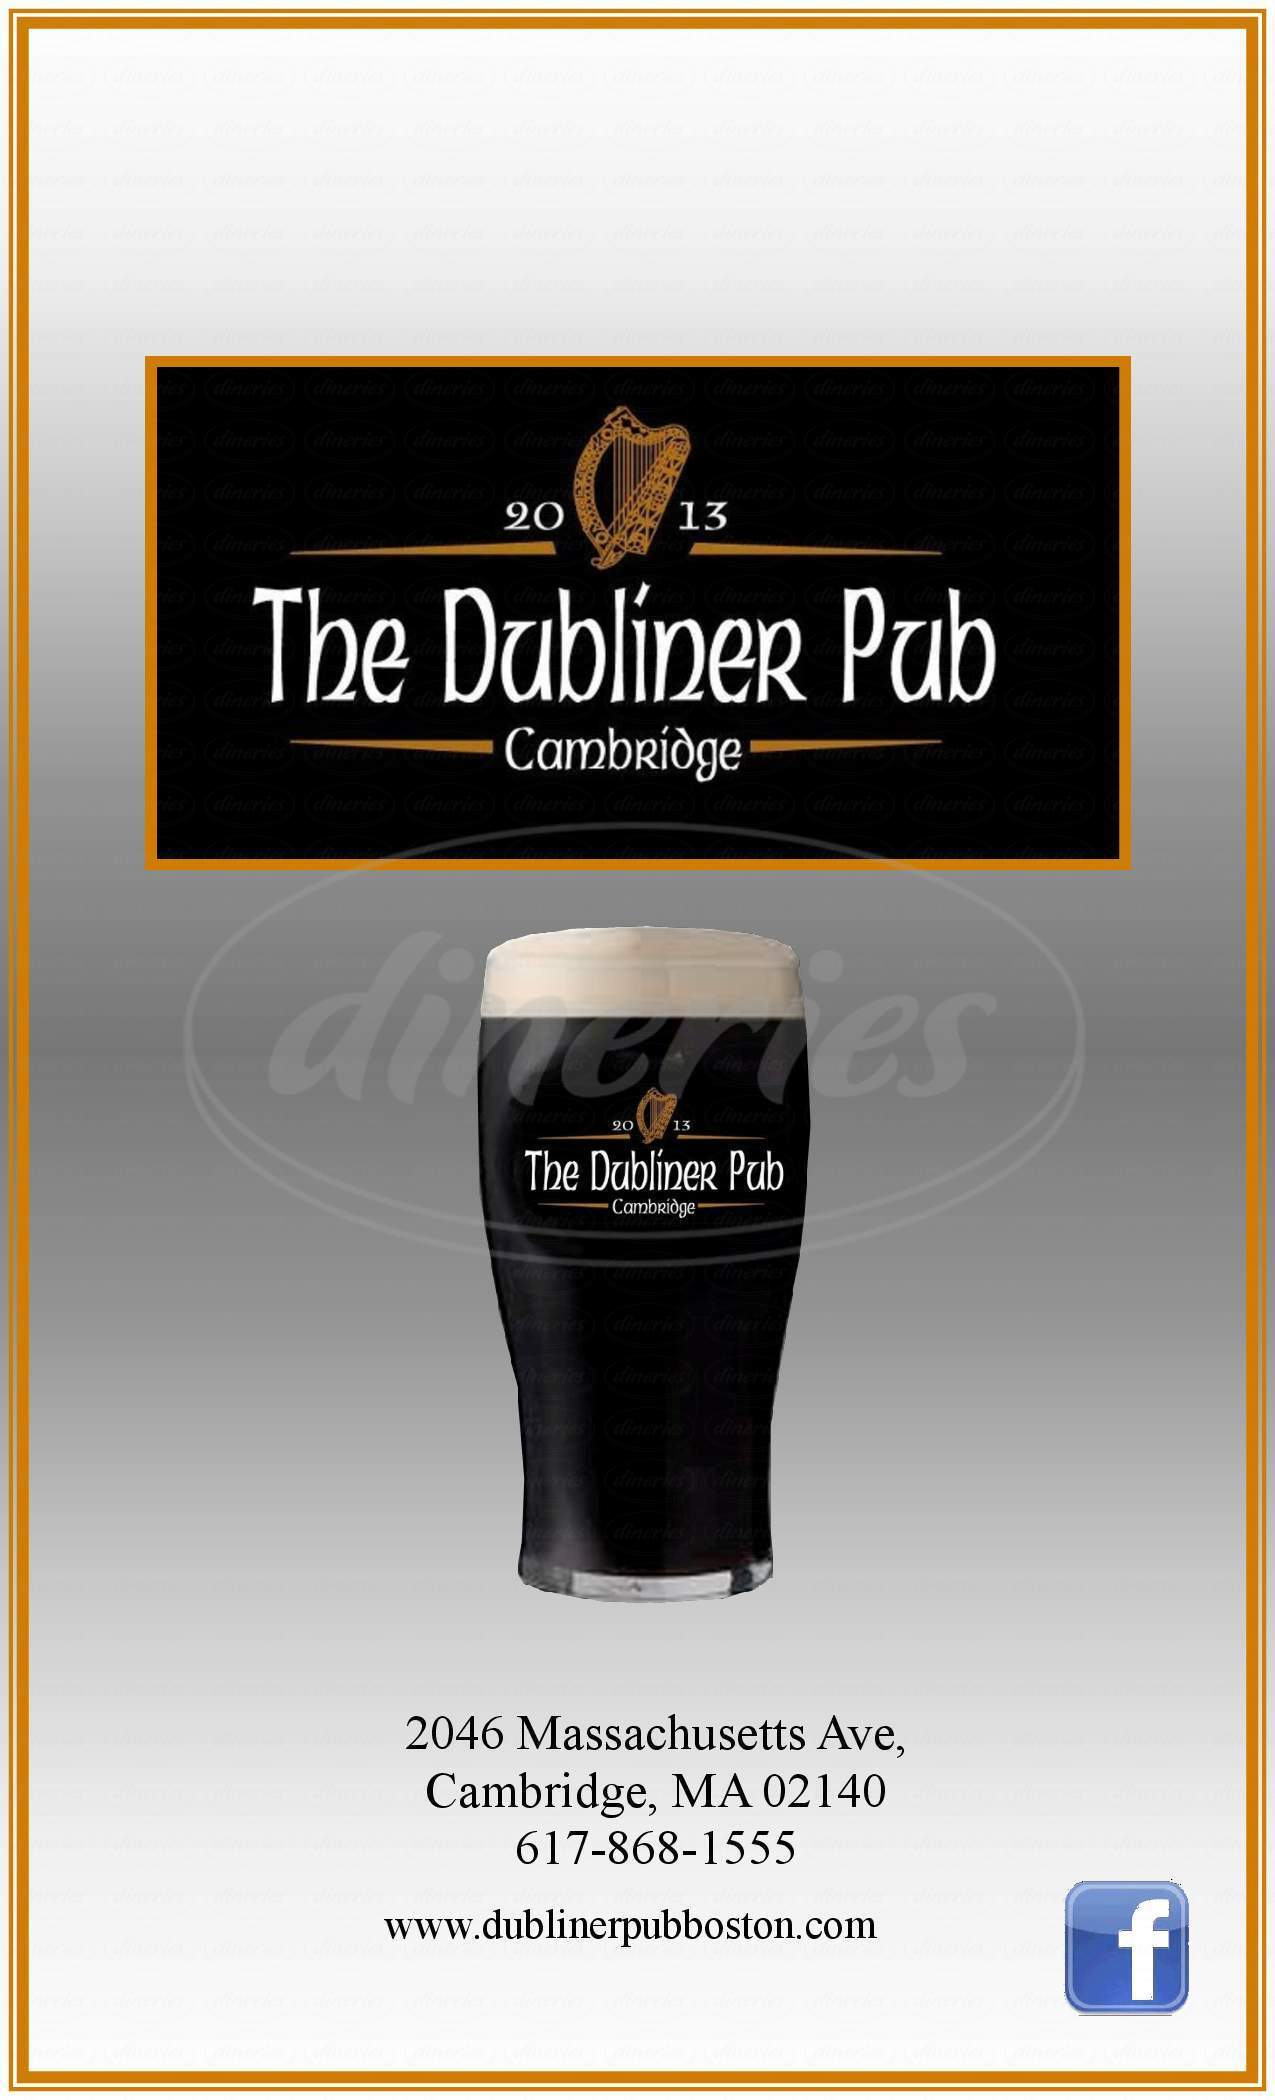 menu for The Dubliner Pub